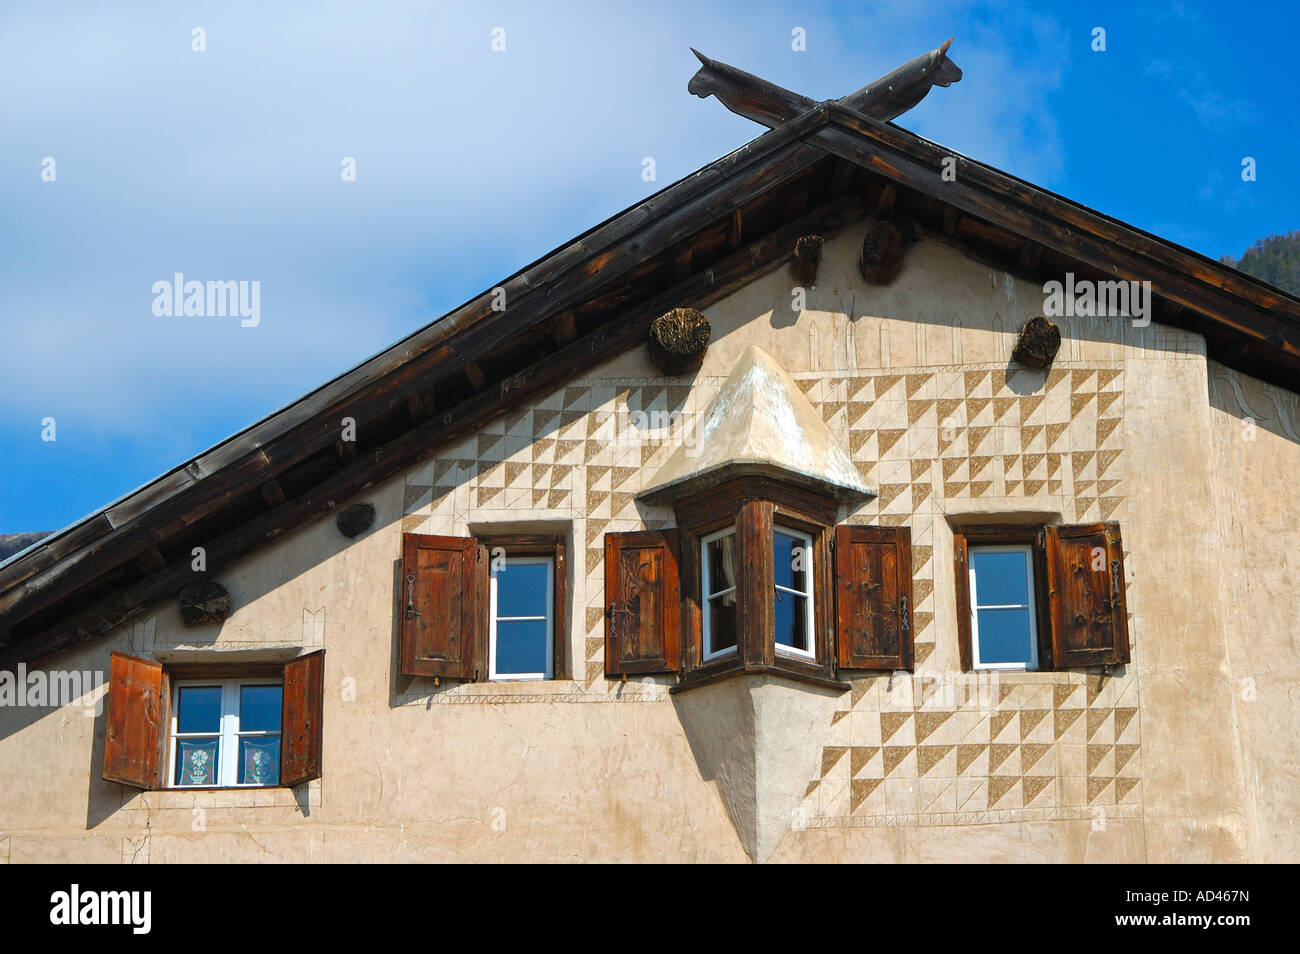 Facade of a typical Engadine house decorated with Sgraffito ornaments, Samedan, Engadin, Grisons, Switzerland Stock Photo